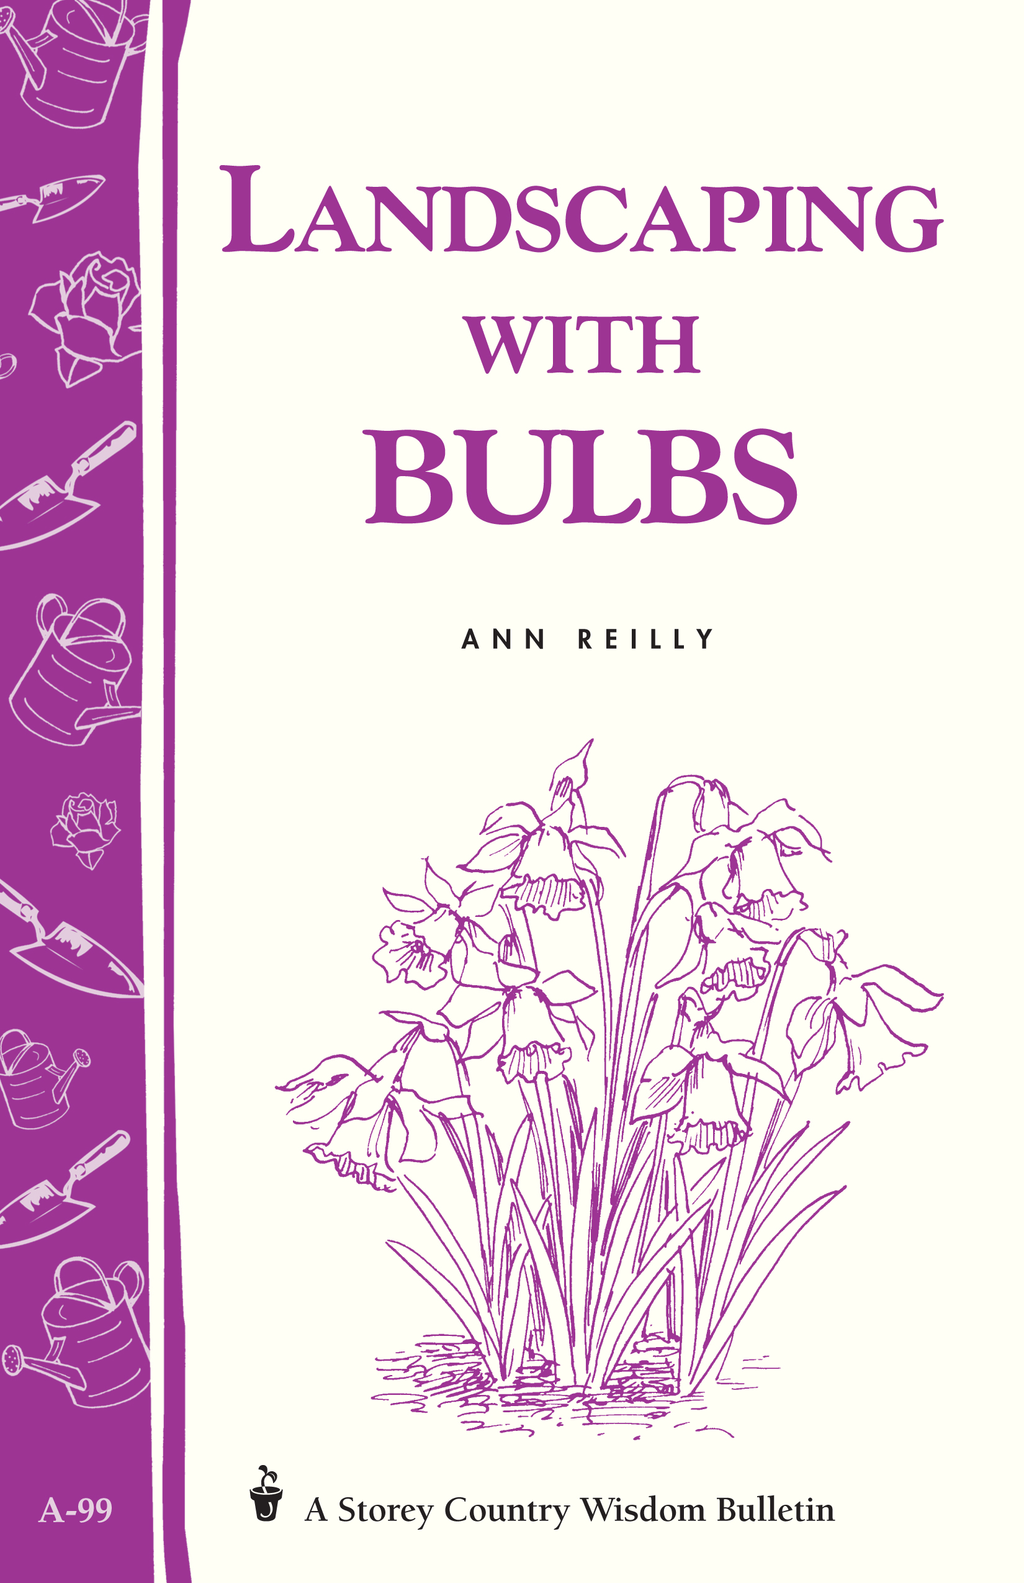 Landscaping with Bulbs By: Ann Reilly